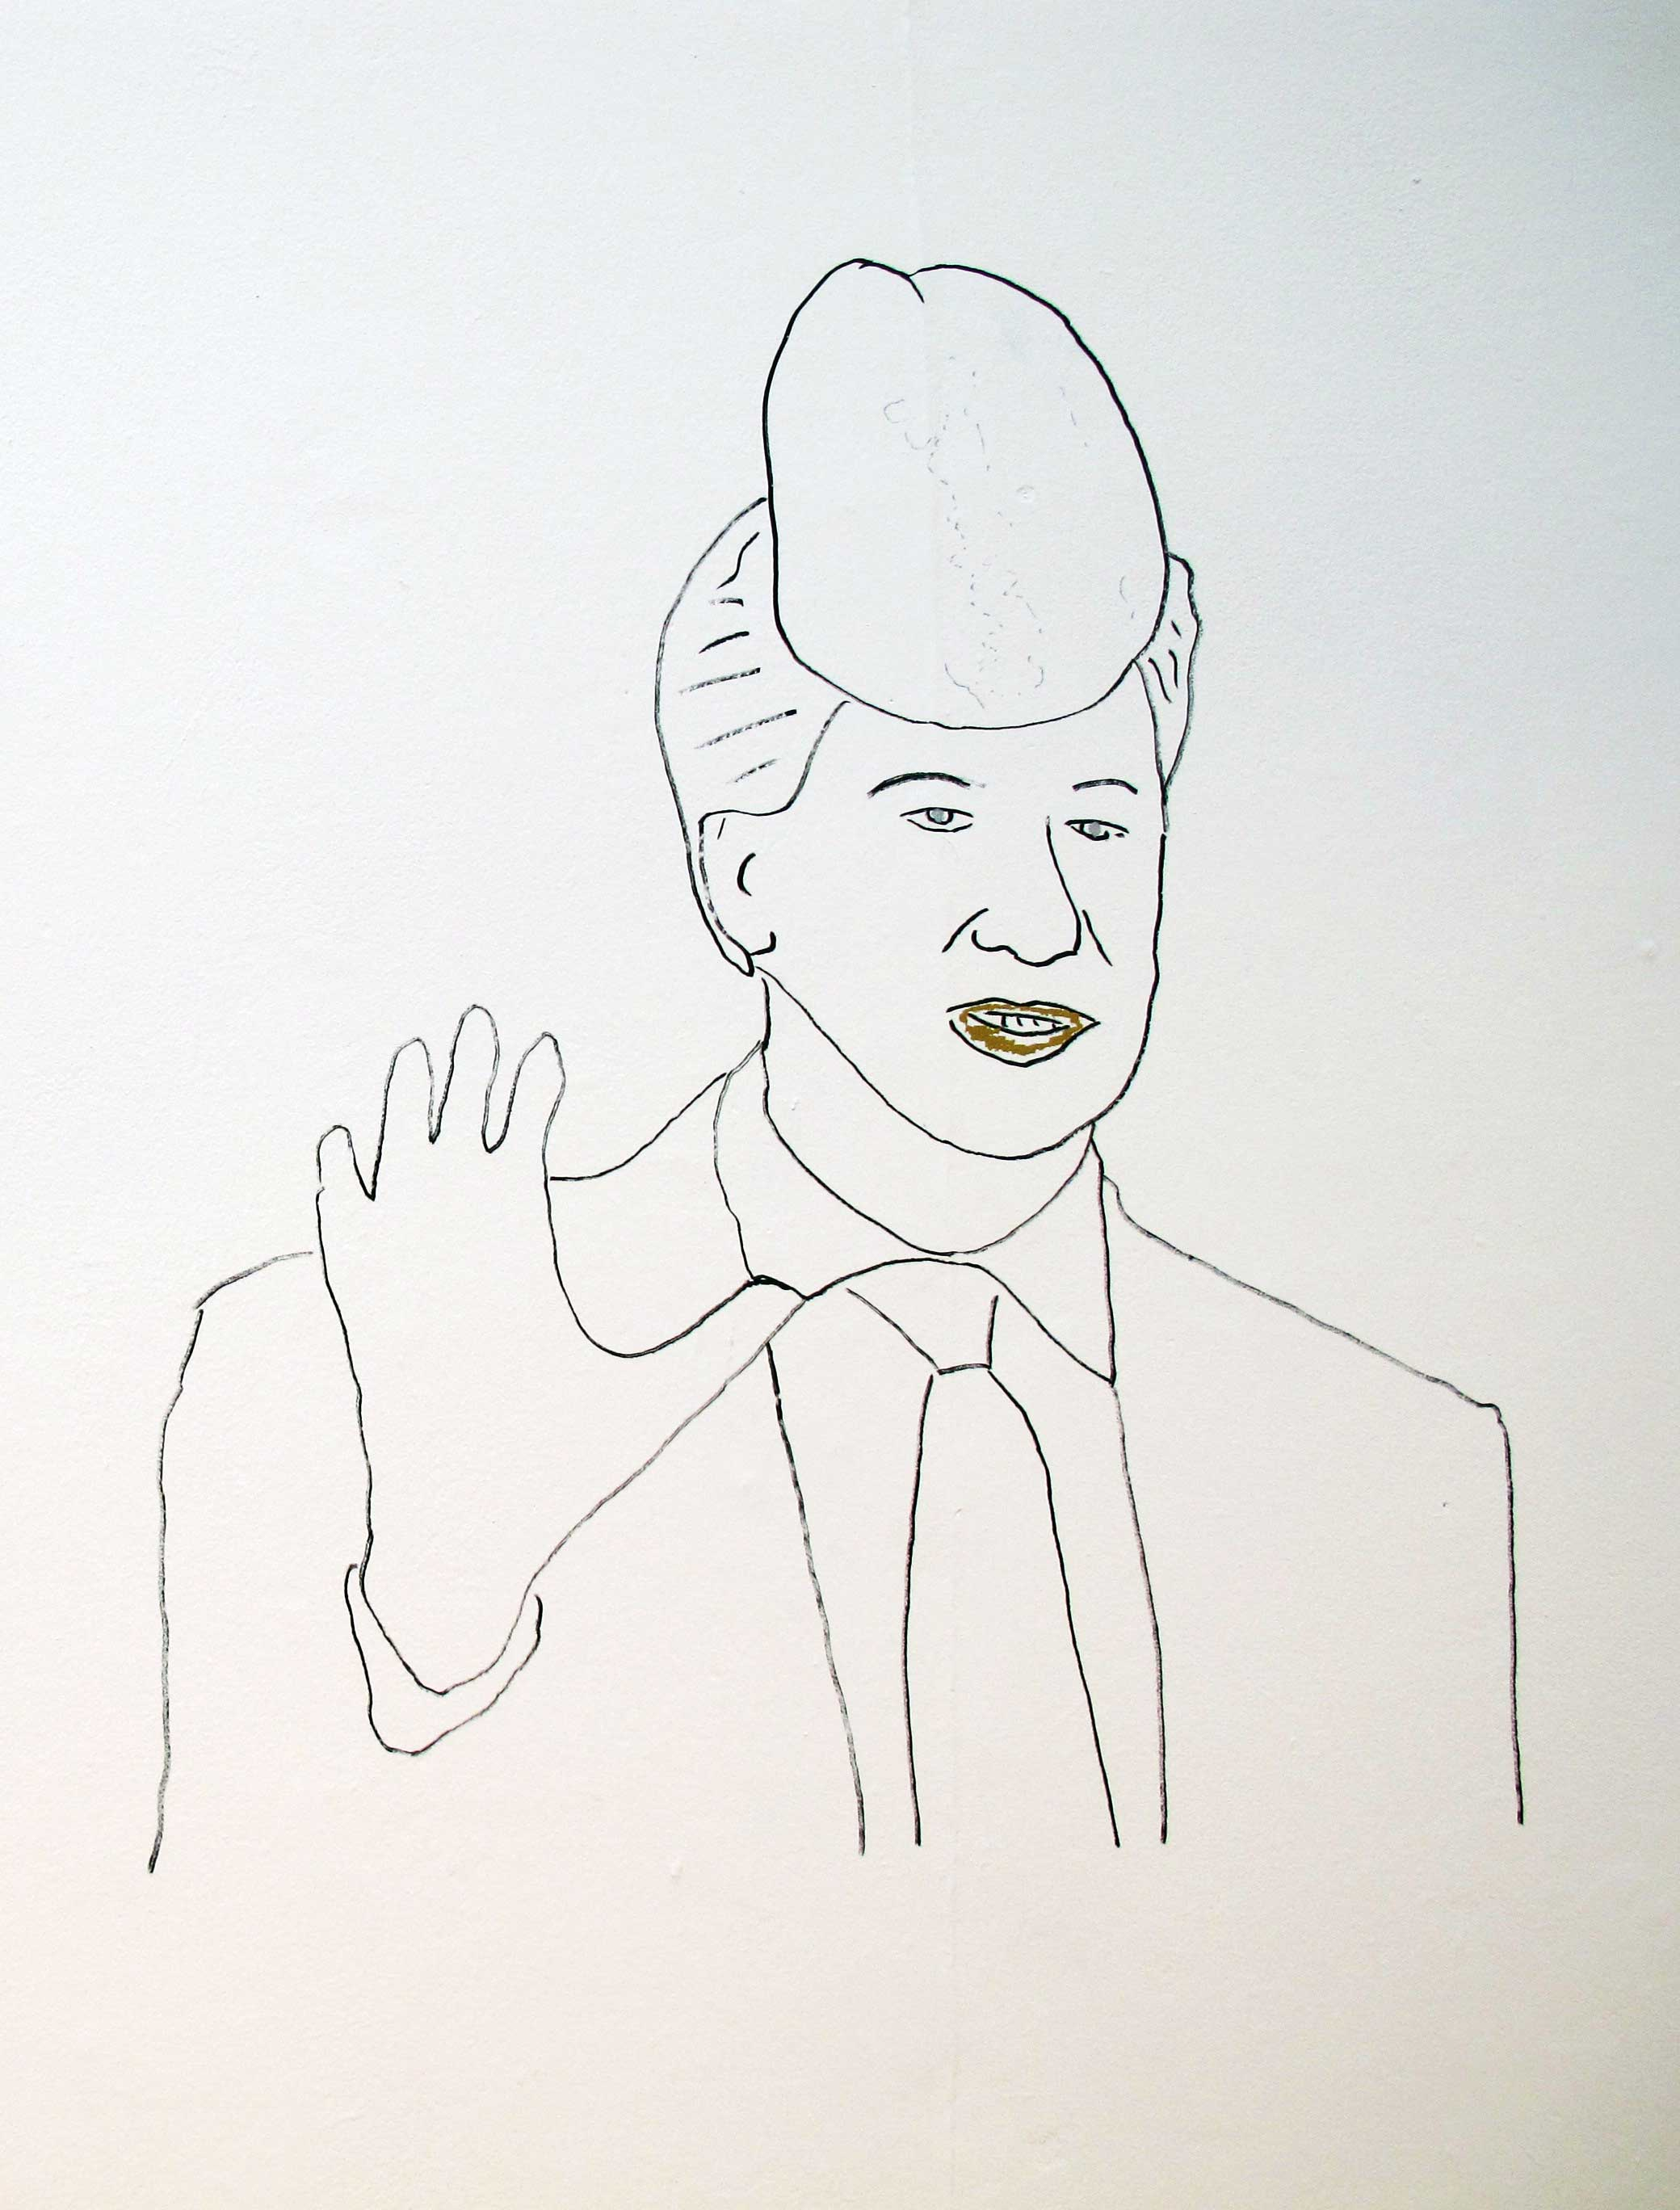 a hand drawn image of a man waving with the top of a penis on his head